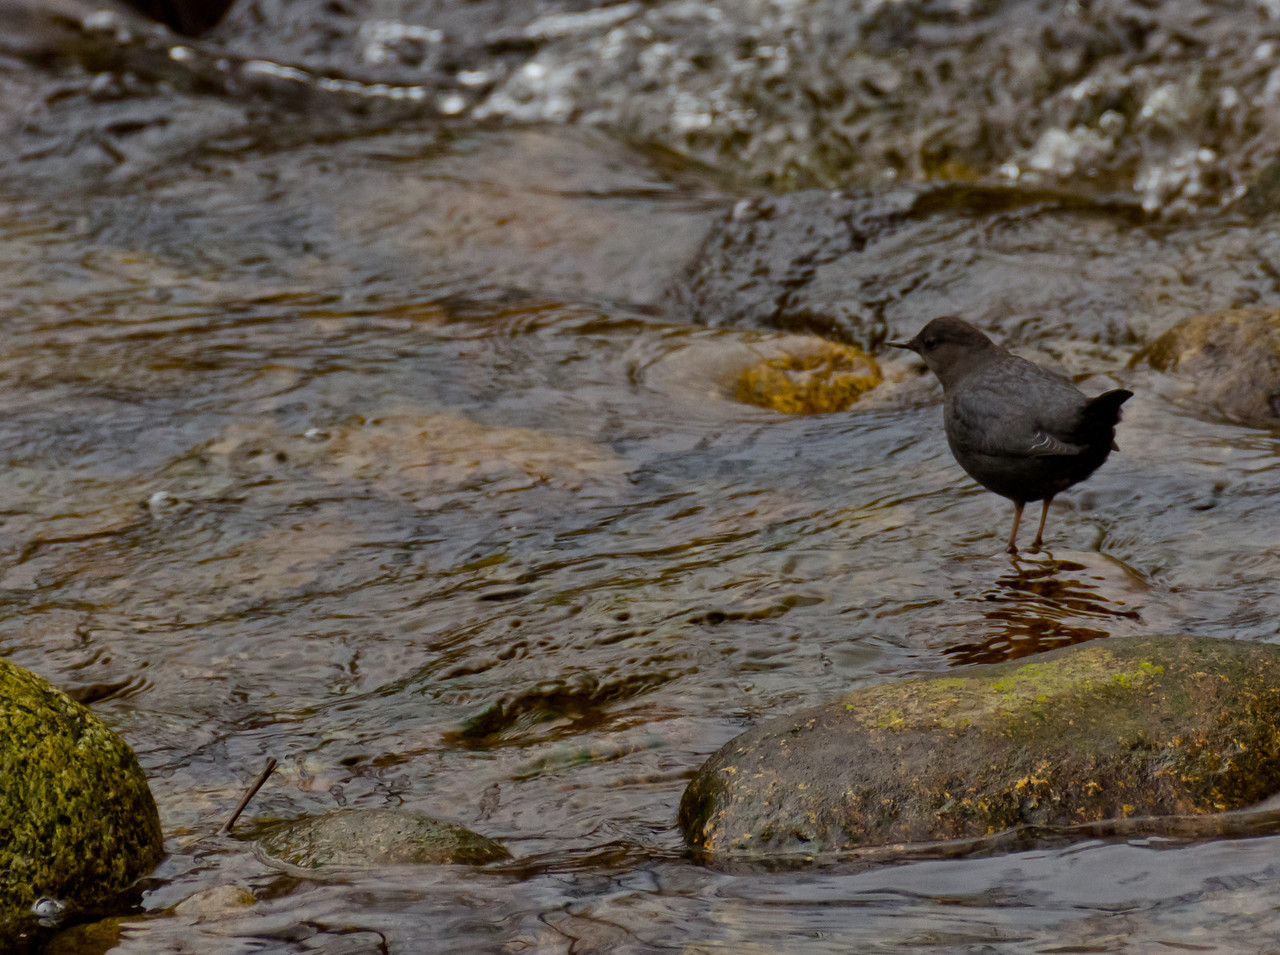 This little bird is waiting for dinner to float by.